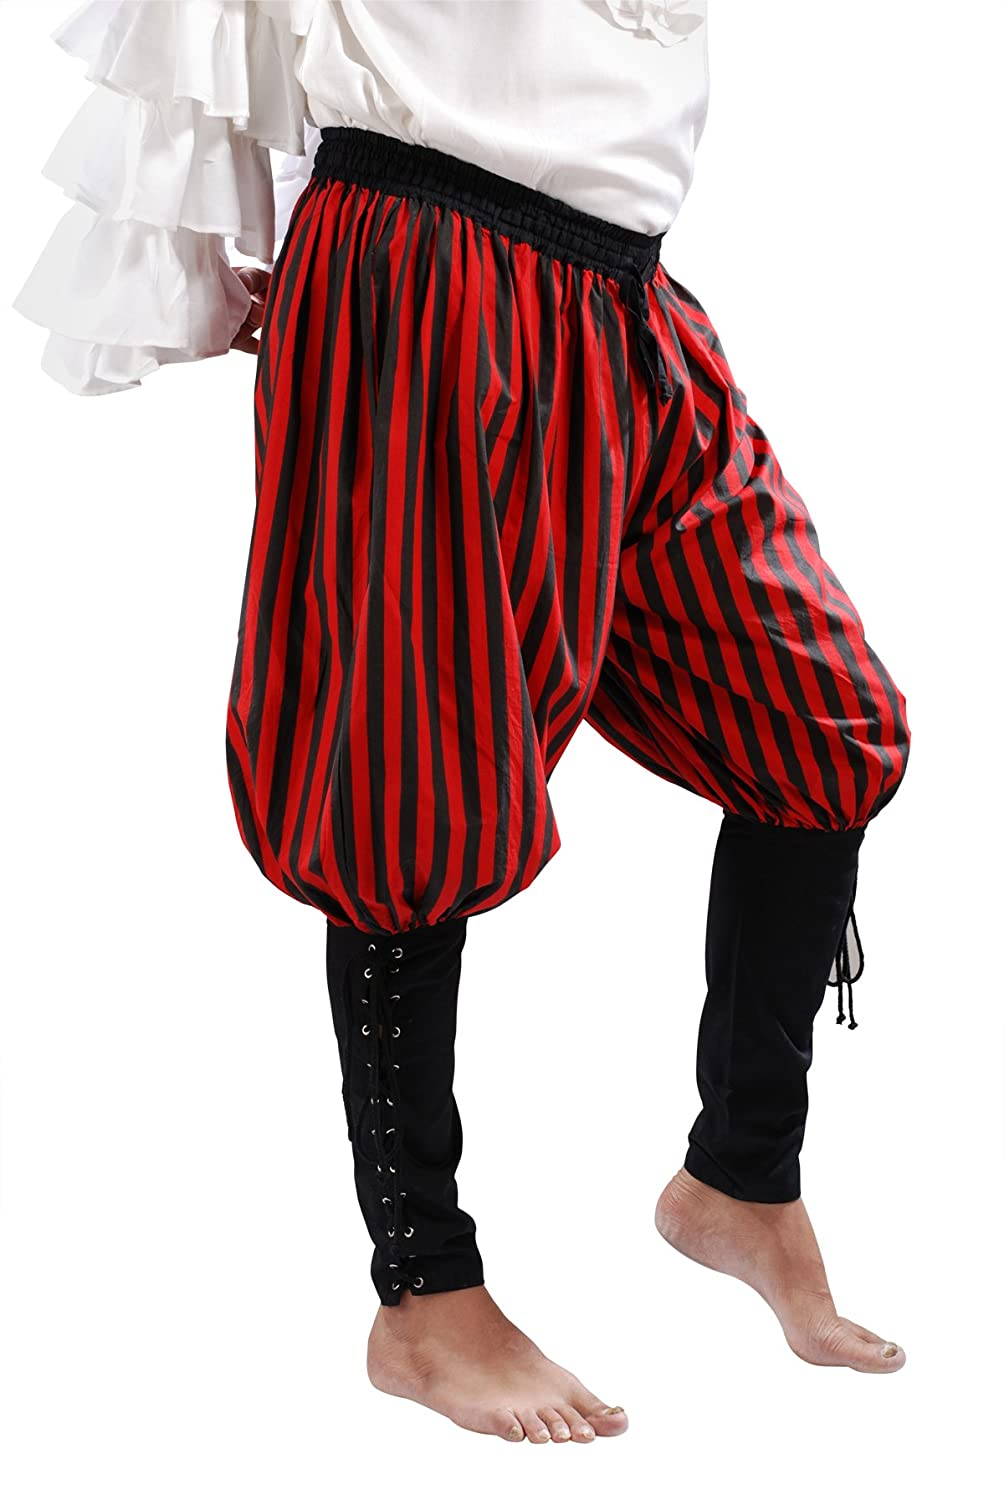 Deluxe Adult Costumes - Men's red & black stripe buccaneer pirate pants costume by Armor Venue